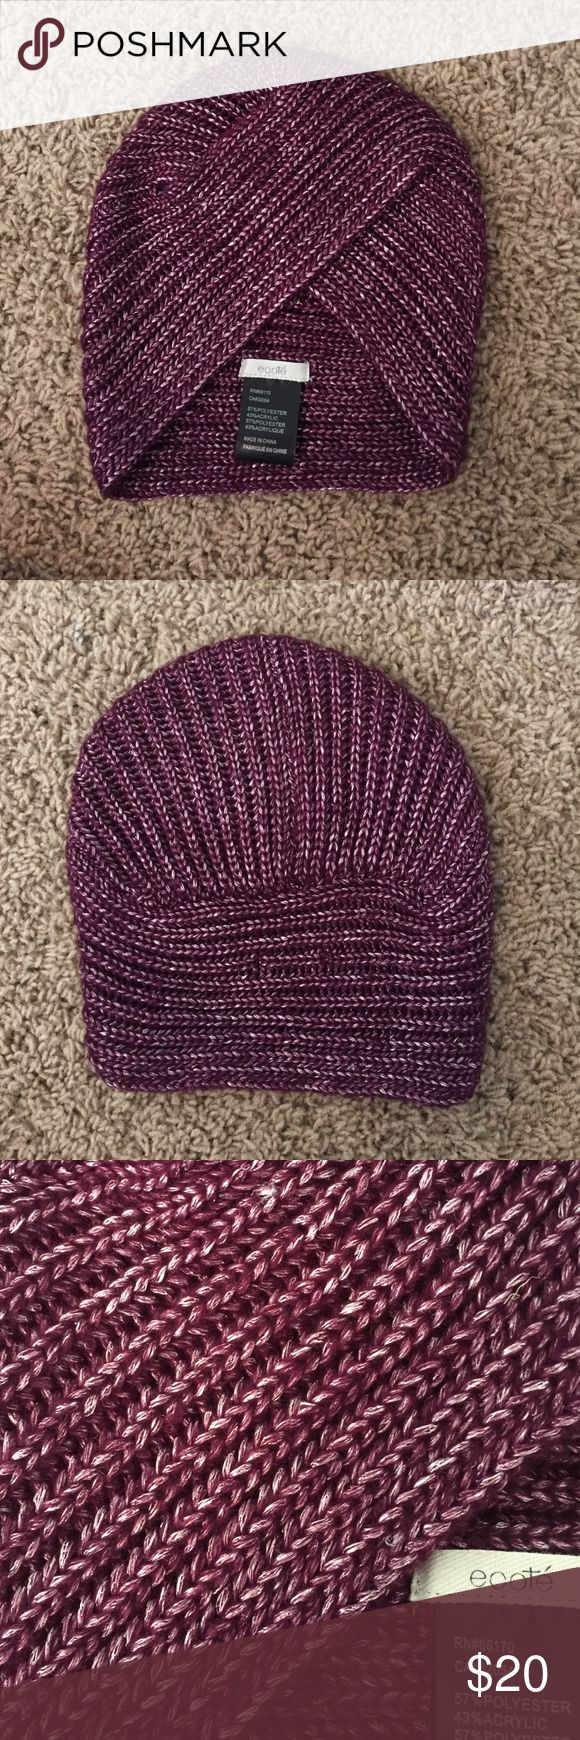 Turban winter hat Knit turban purple winter hat with slight shiny detailing never worn but tags are off // willing to negotiate price Ecote Accessories Hats